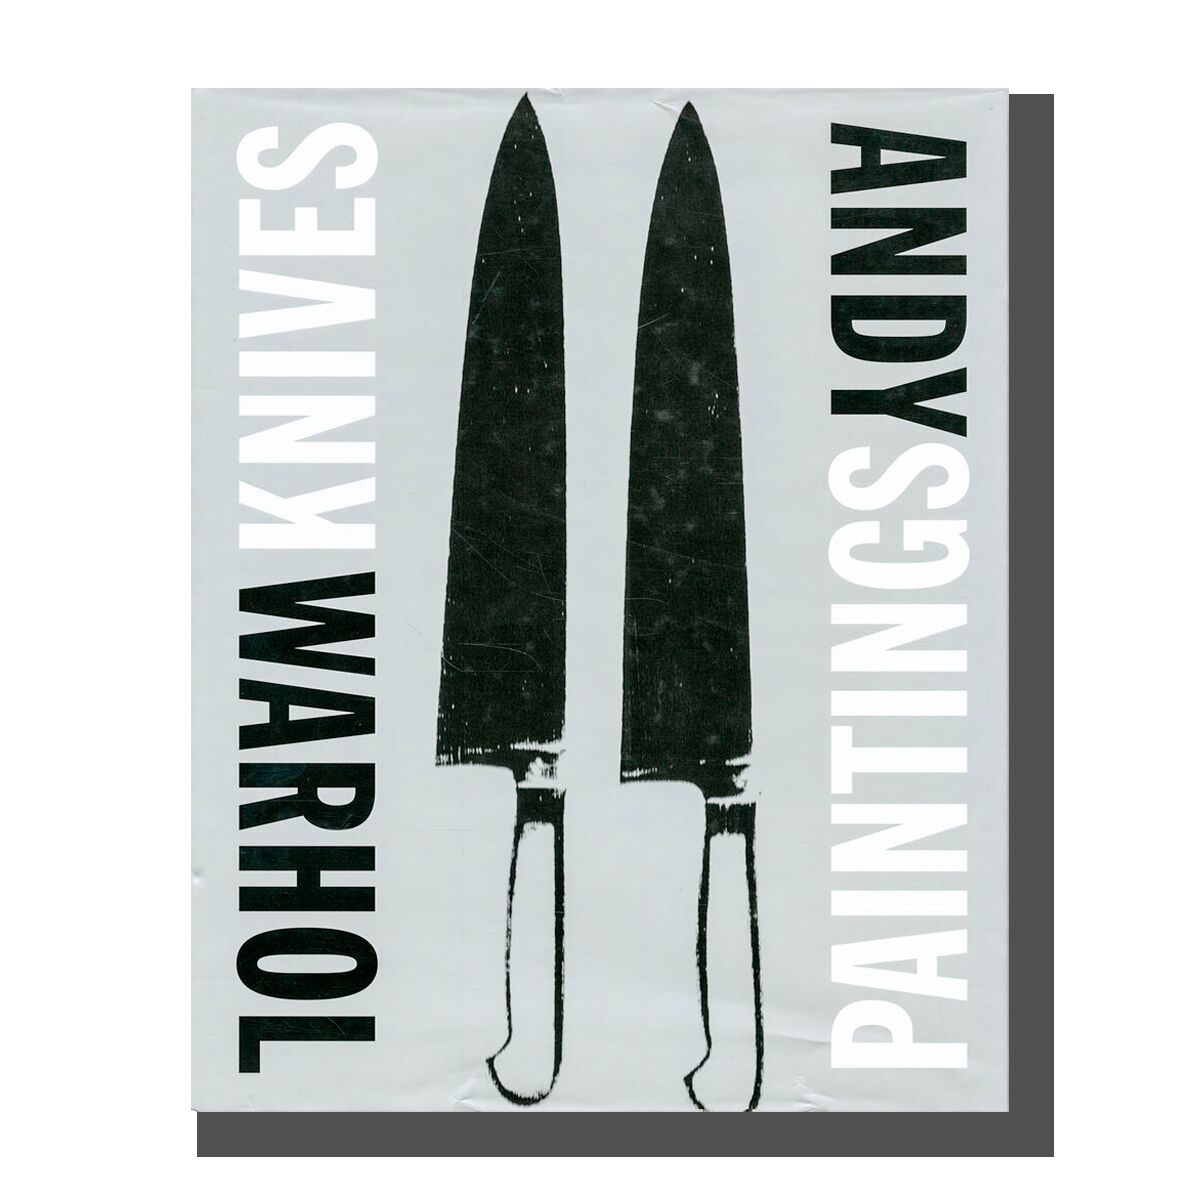 KNIVES: Paintings, Polaroids and Drawings by Andy Warhol